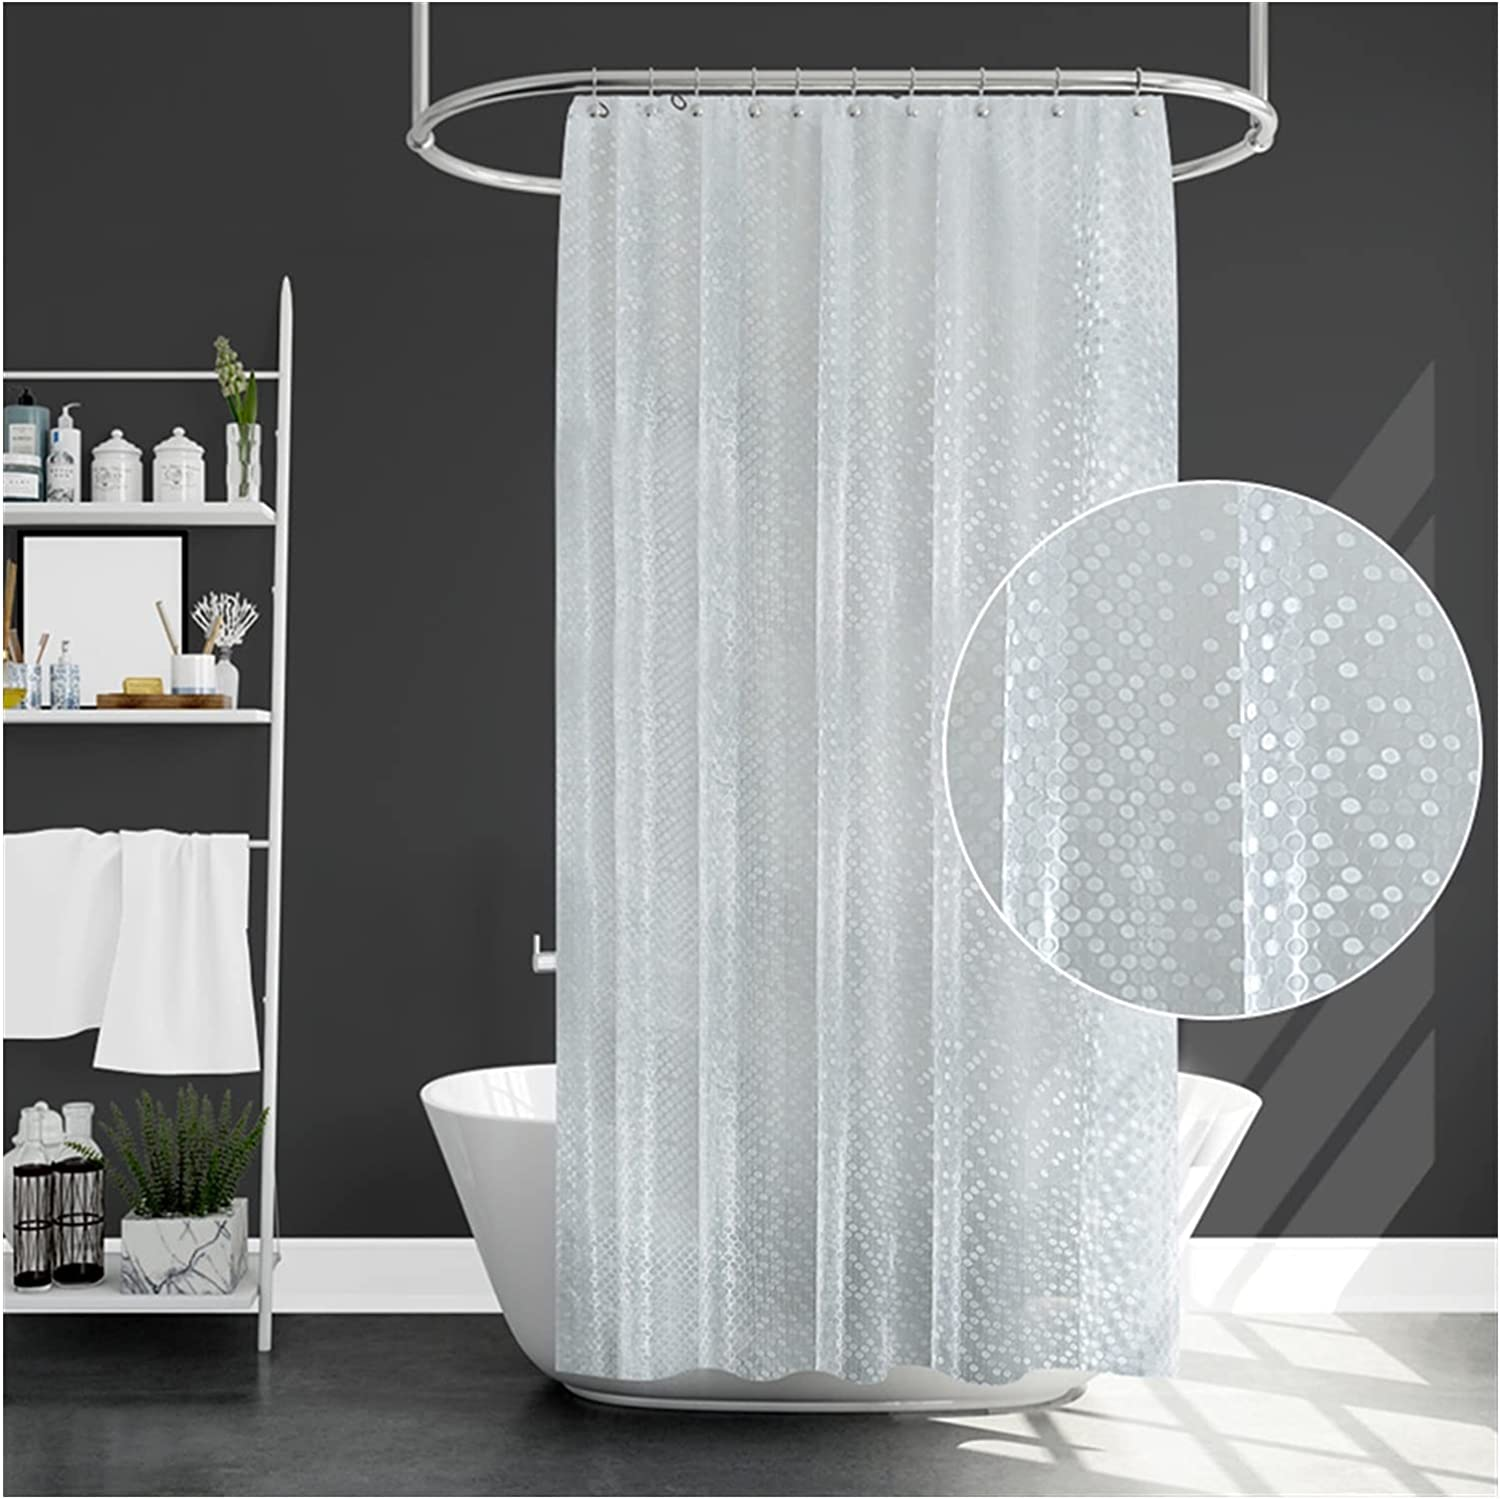 ZXCVB ZHENZEN Los Angeles Mall Bathroom Shower Sen Curtain Materials Quick-Drying Selling and selling